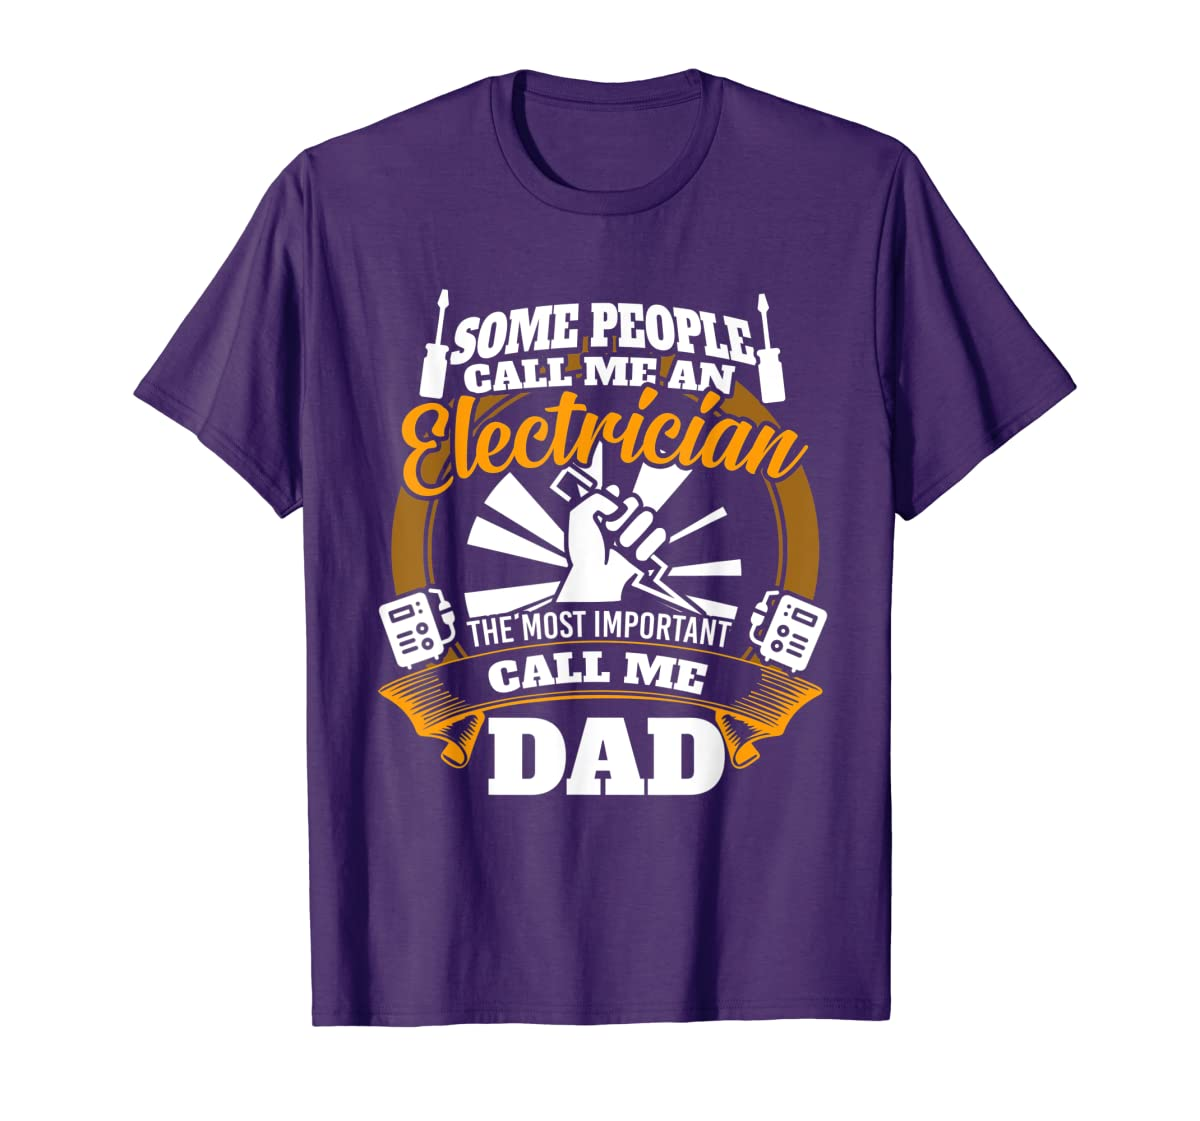 Mens Funny Electrician T-shirt for dad who loves technician gifts-Men's T-Shirt-Purple